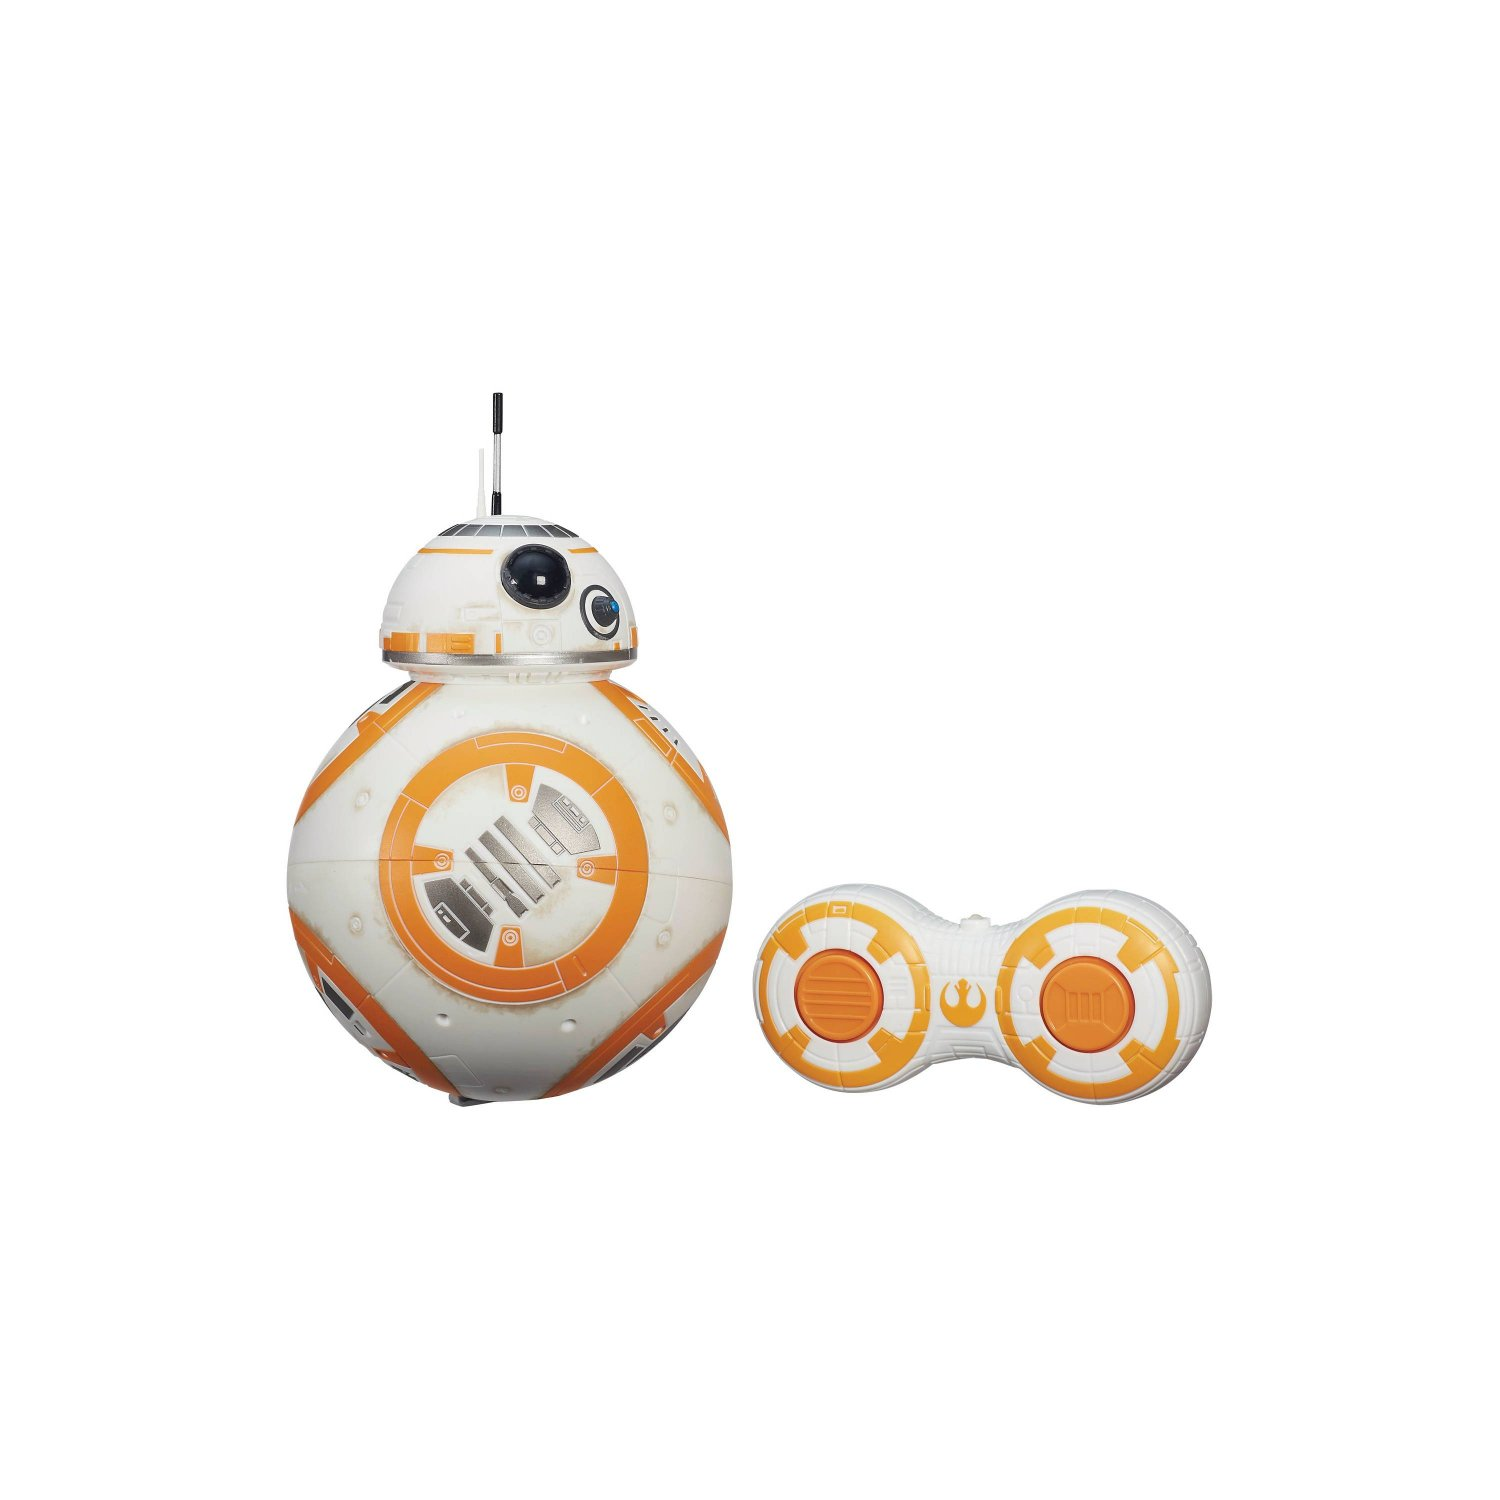 R/C BB-8 Star Wars Episode 7 .This RC BB-8 rolls in any direction and makes droid sounds.